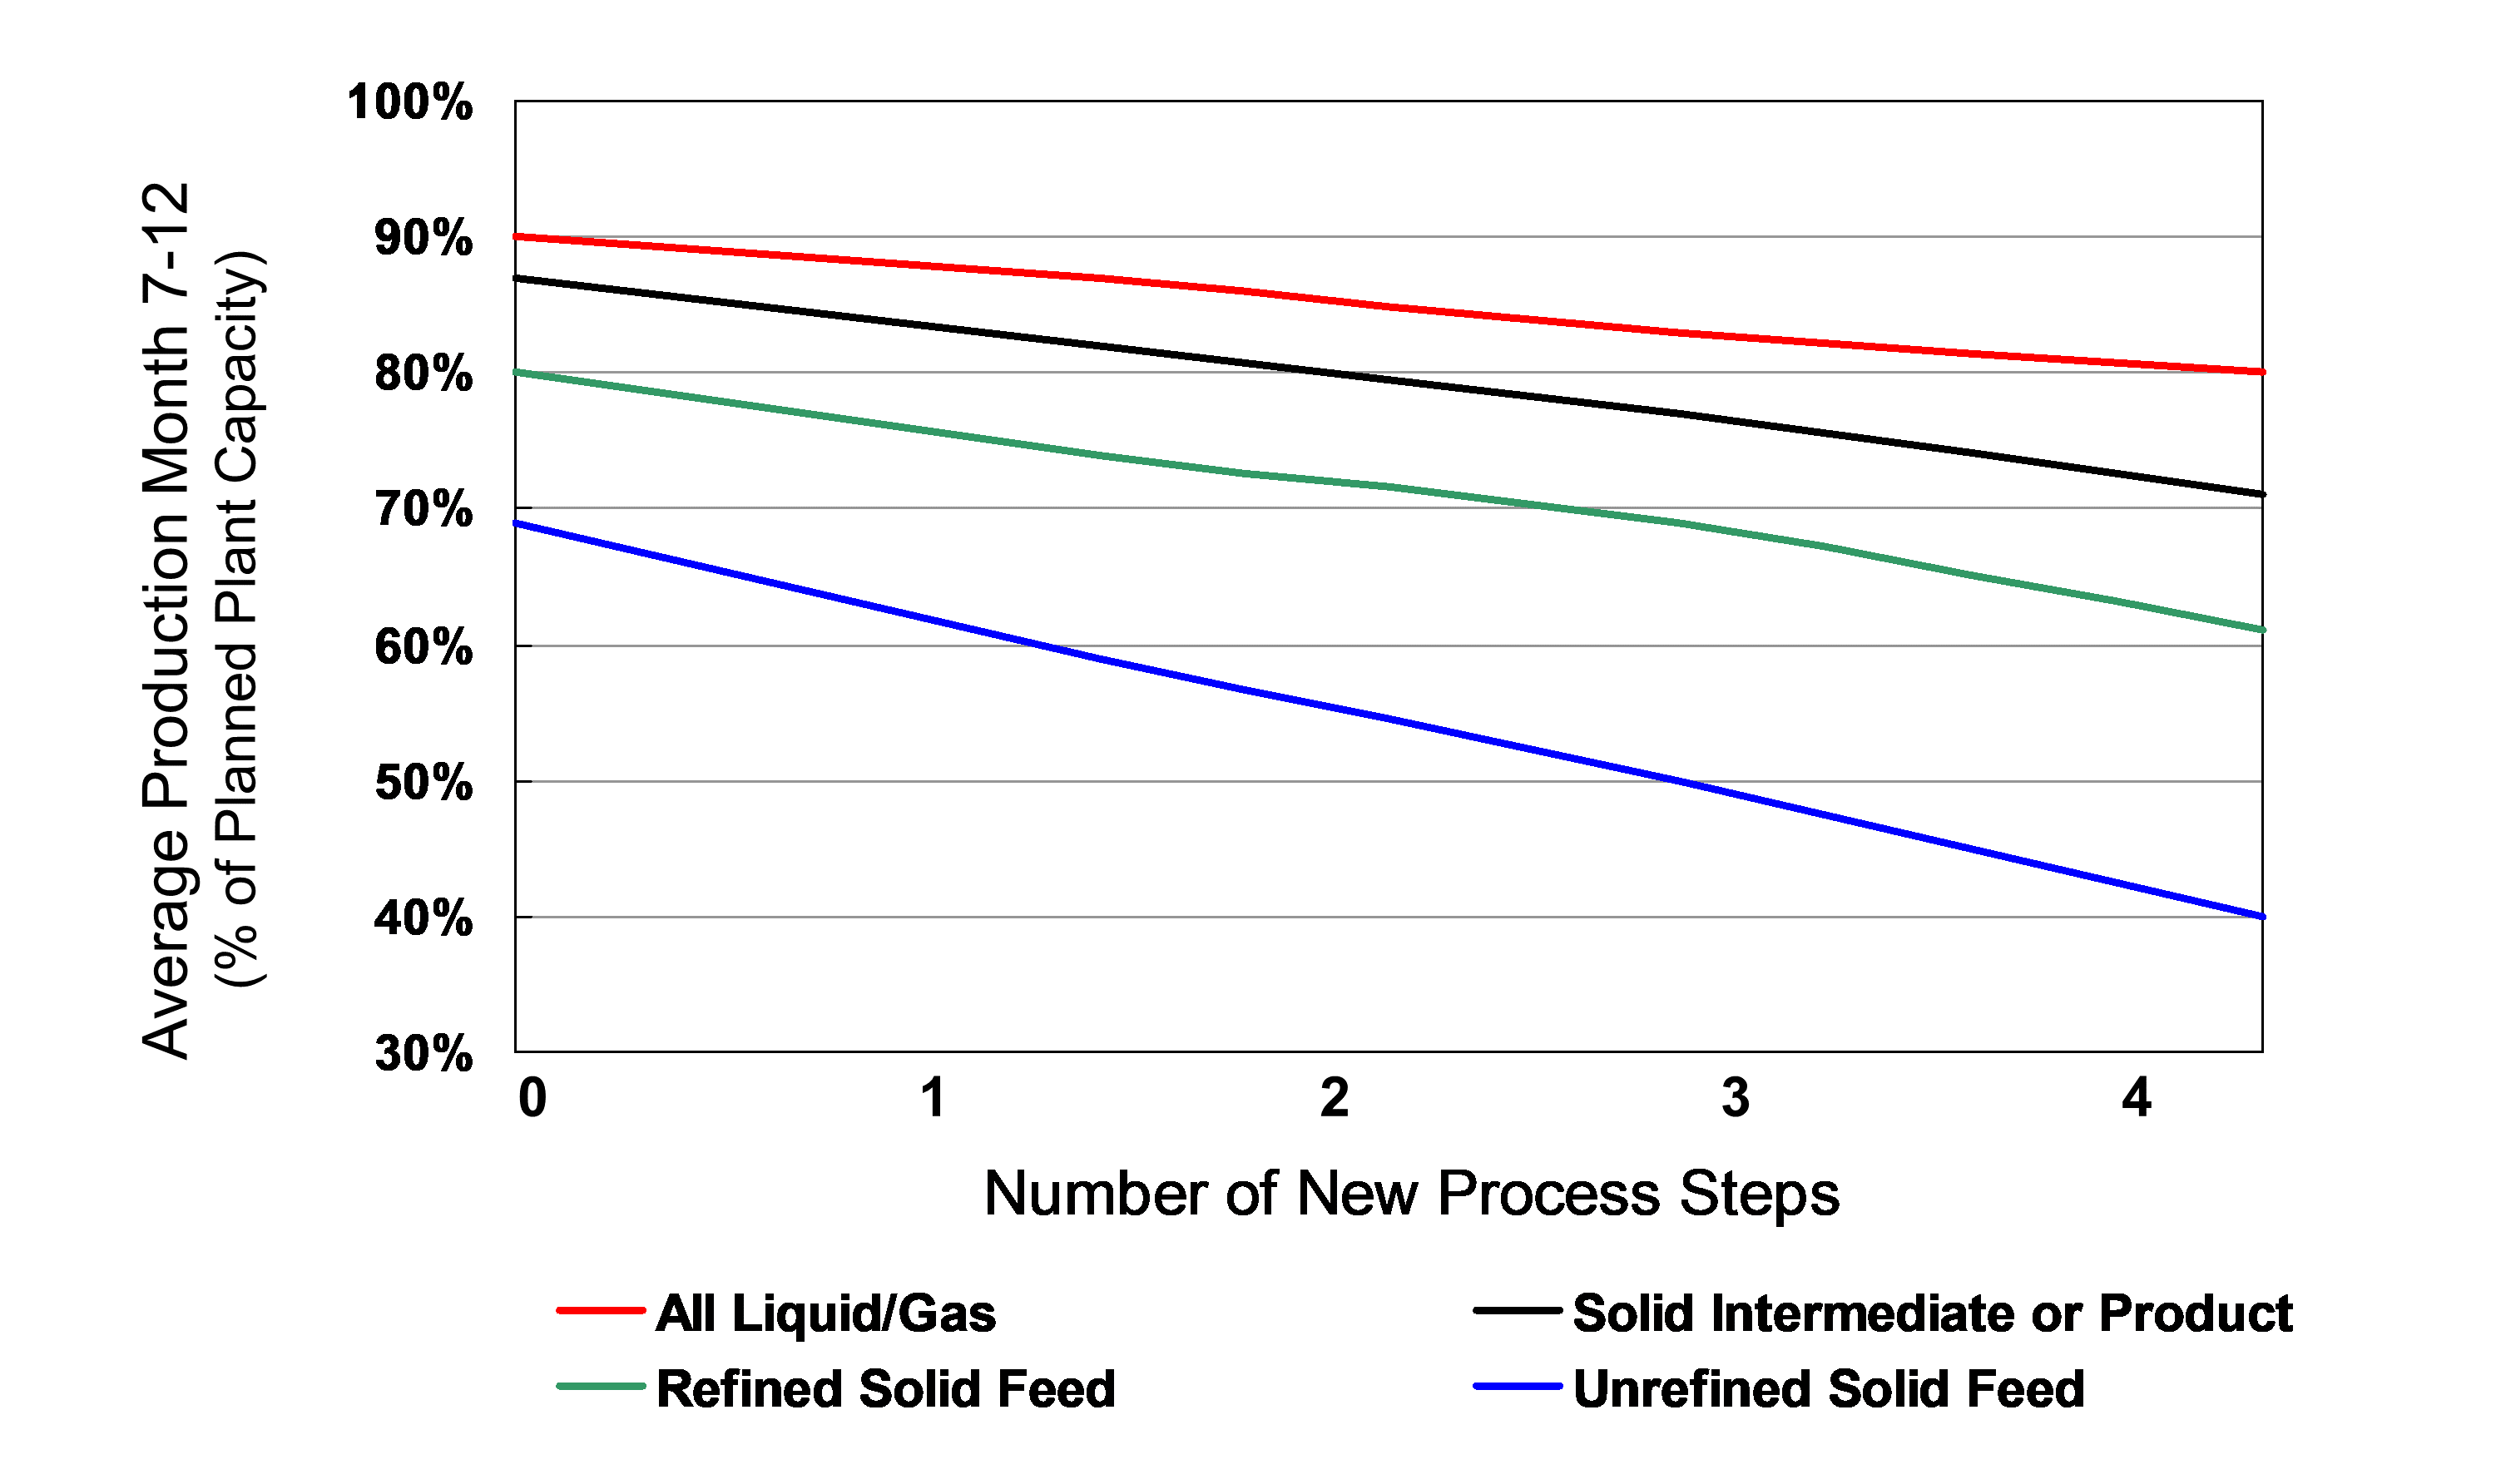 Line graph showing that production decreases as the number of new process steps increases.